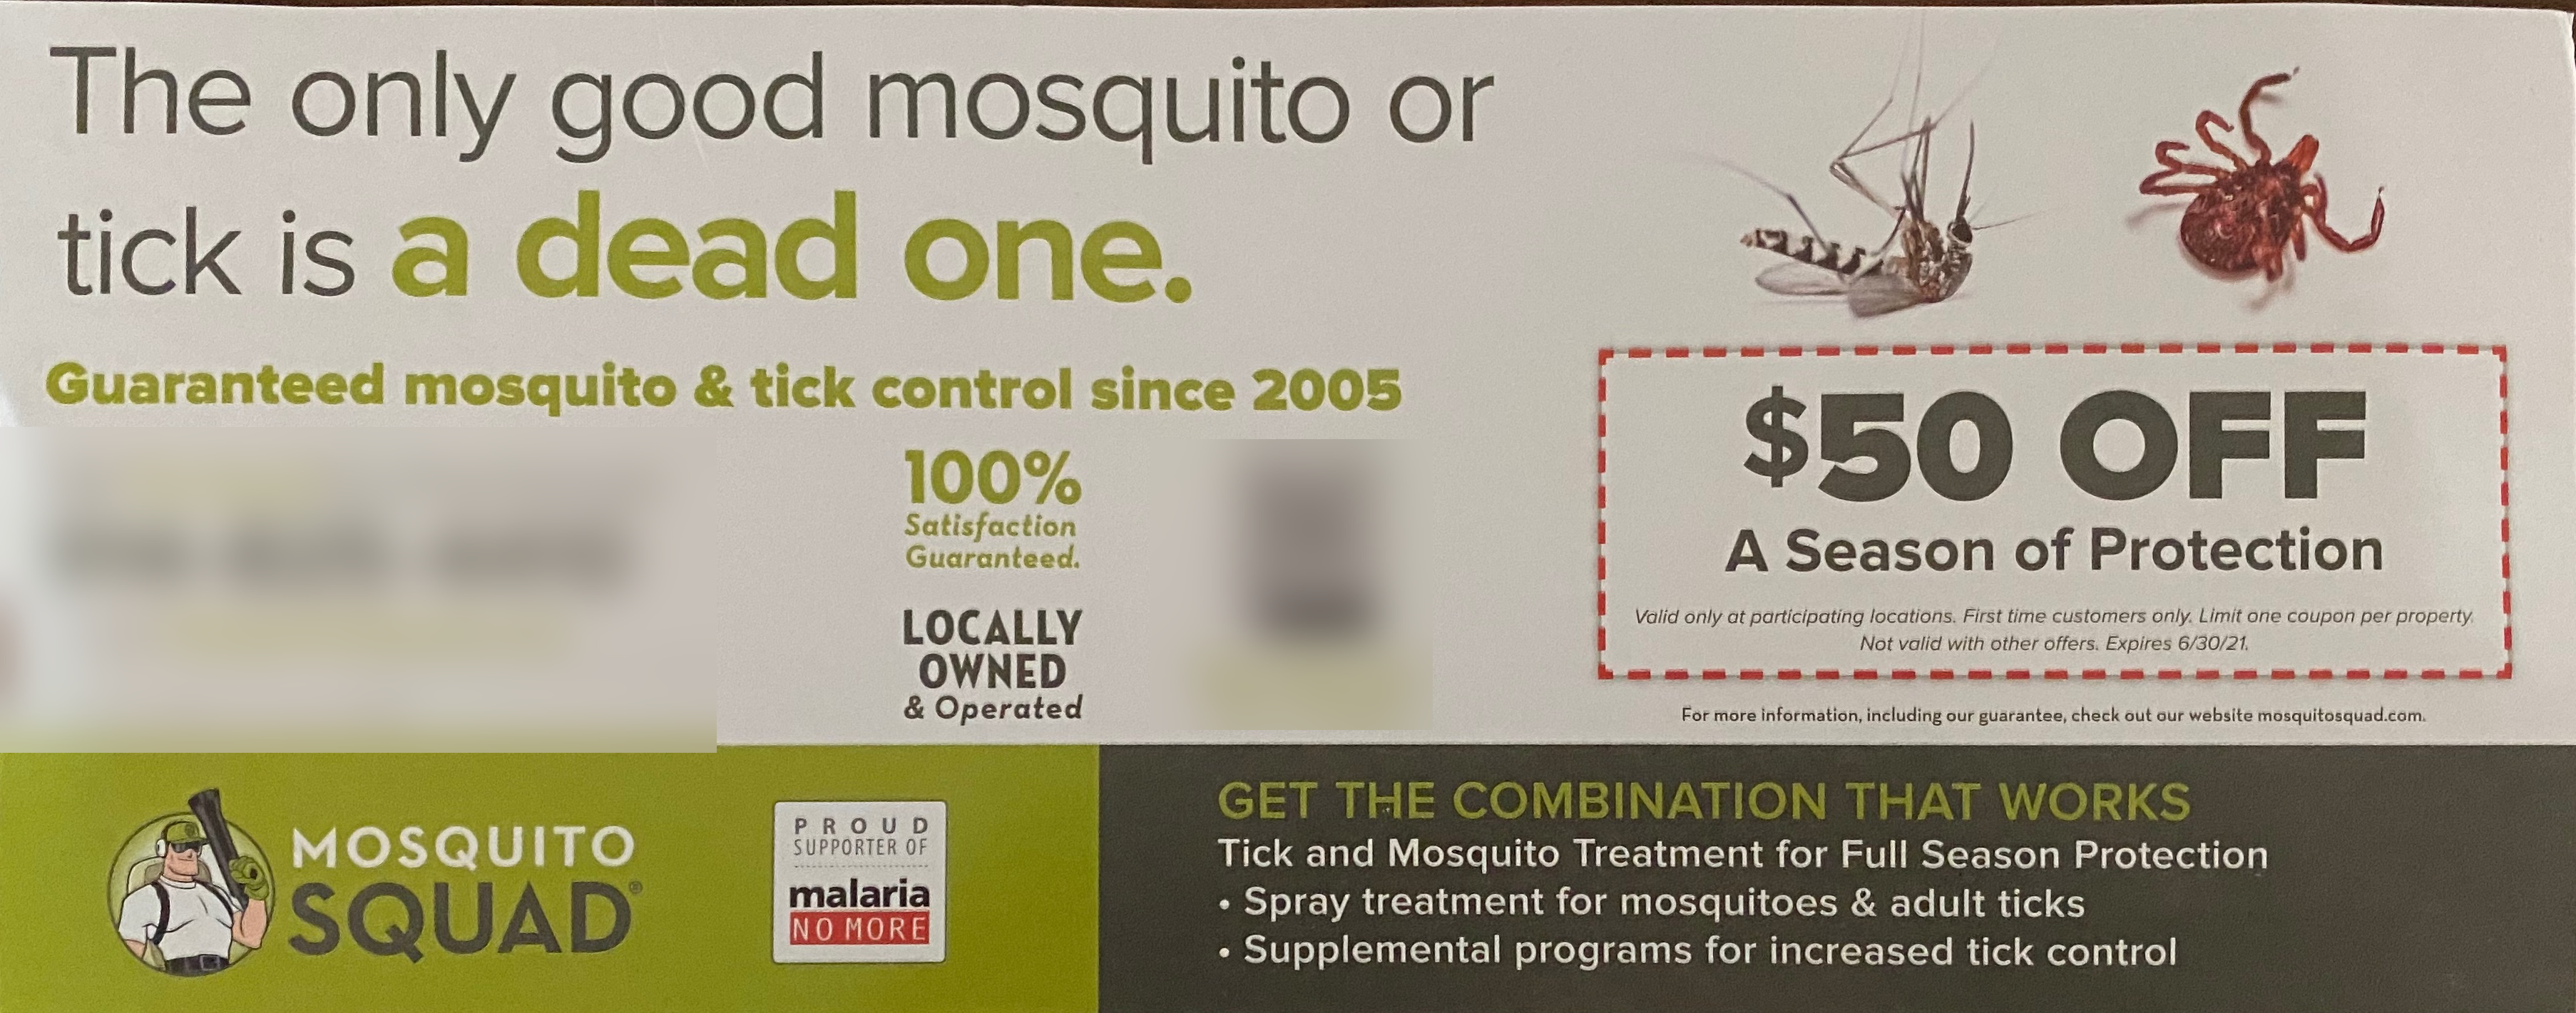 The only bad mosquito is a live mosquito